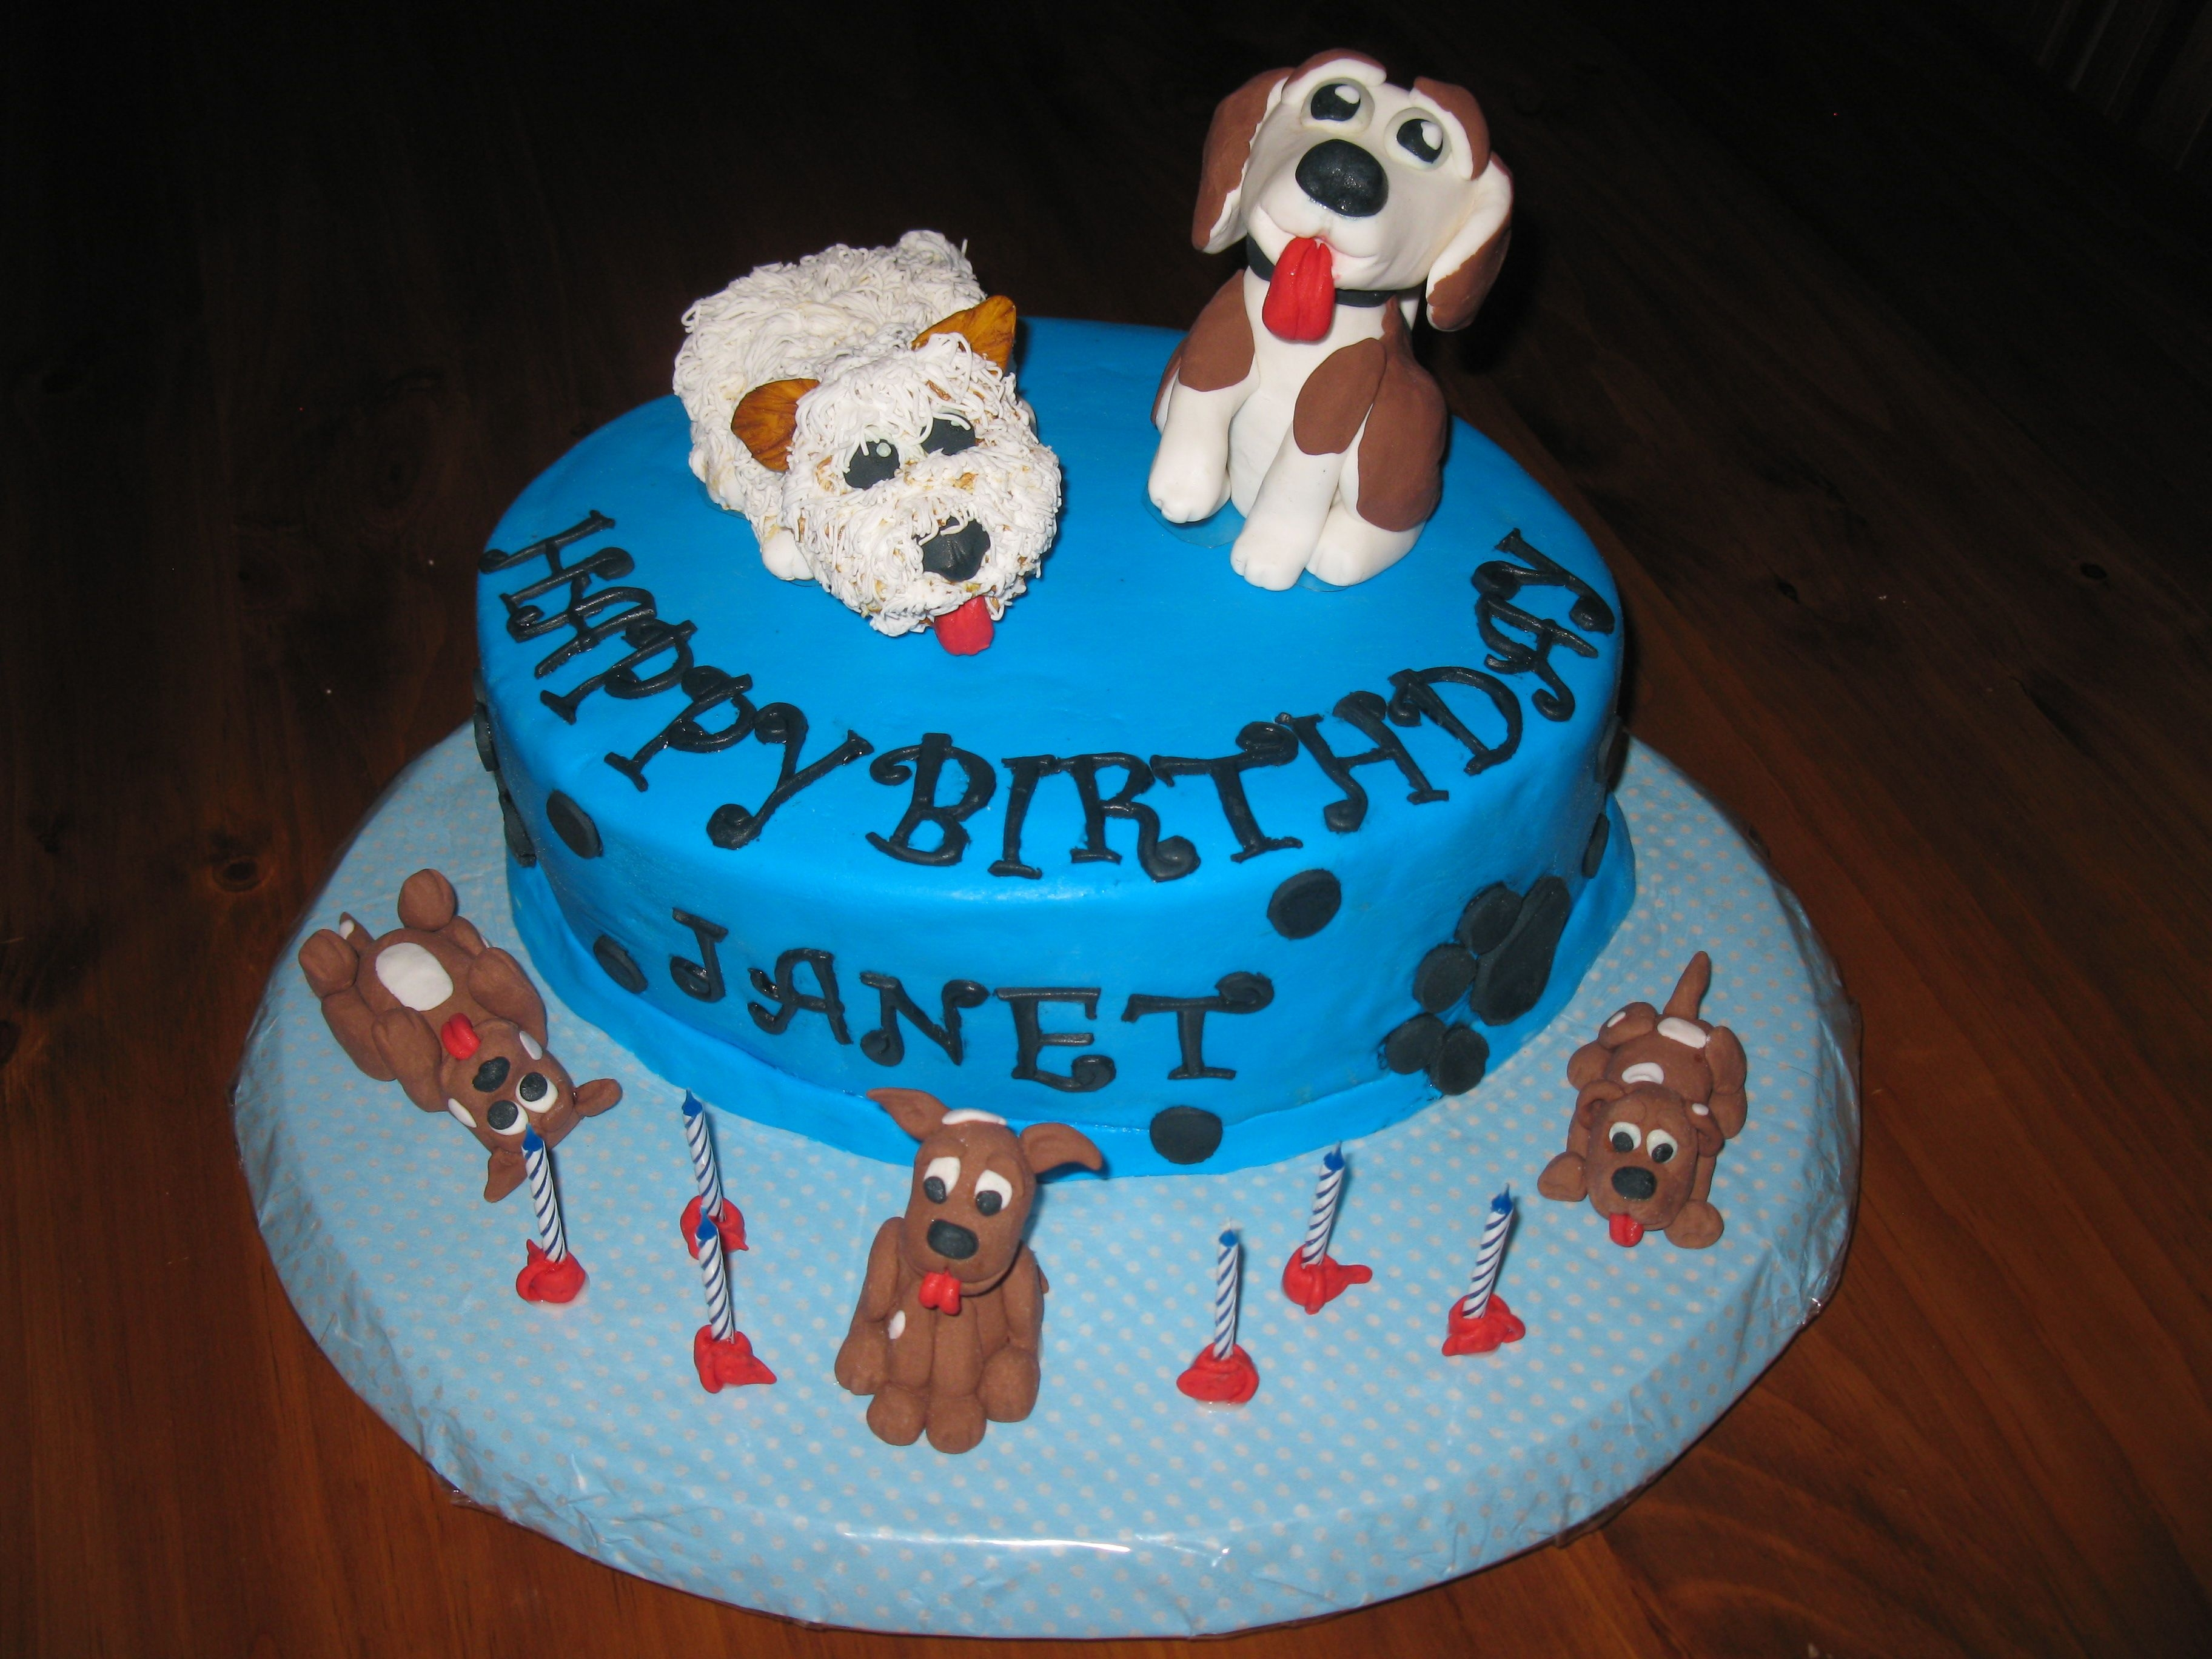 Dog Themed B'day Cake This is my second cake item to sell. The person I made this cake for has two dogs like to one's on top of the cake. The candles have...